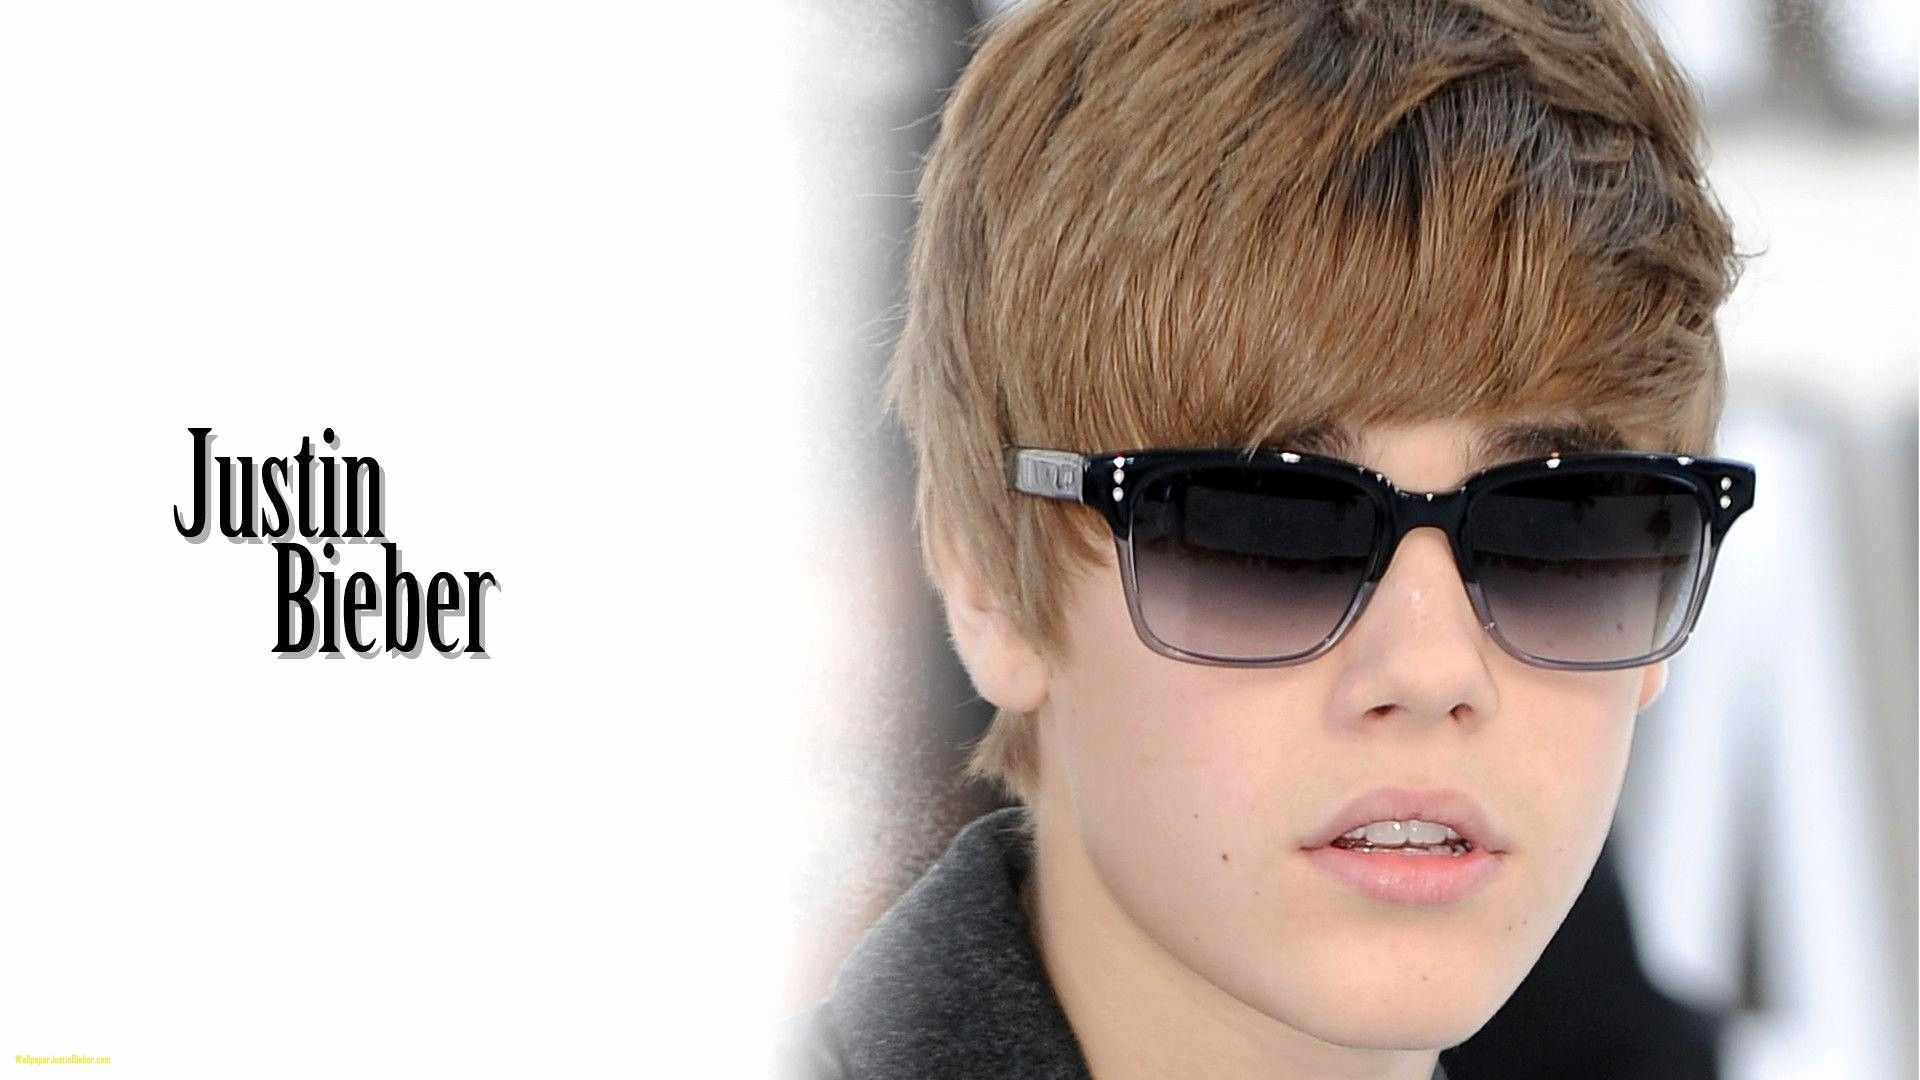 Justin Bieber Background Tumblr 2015 Lovely Justin Bieber ...